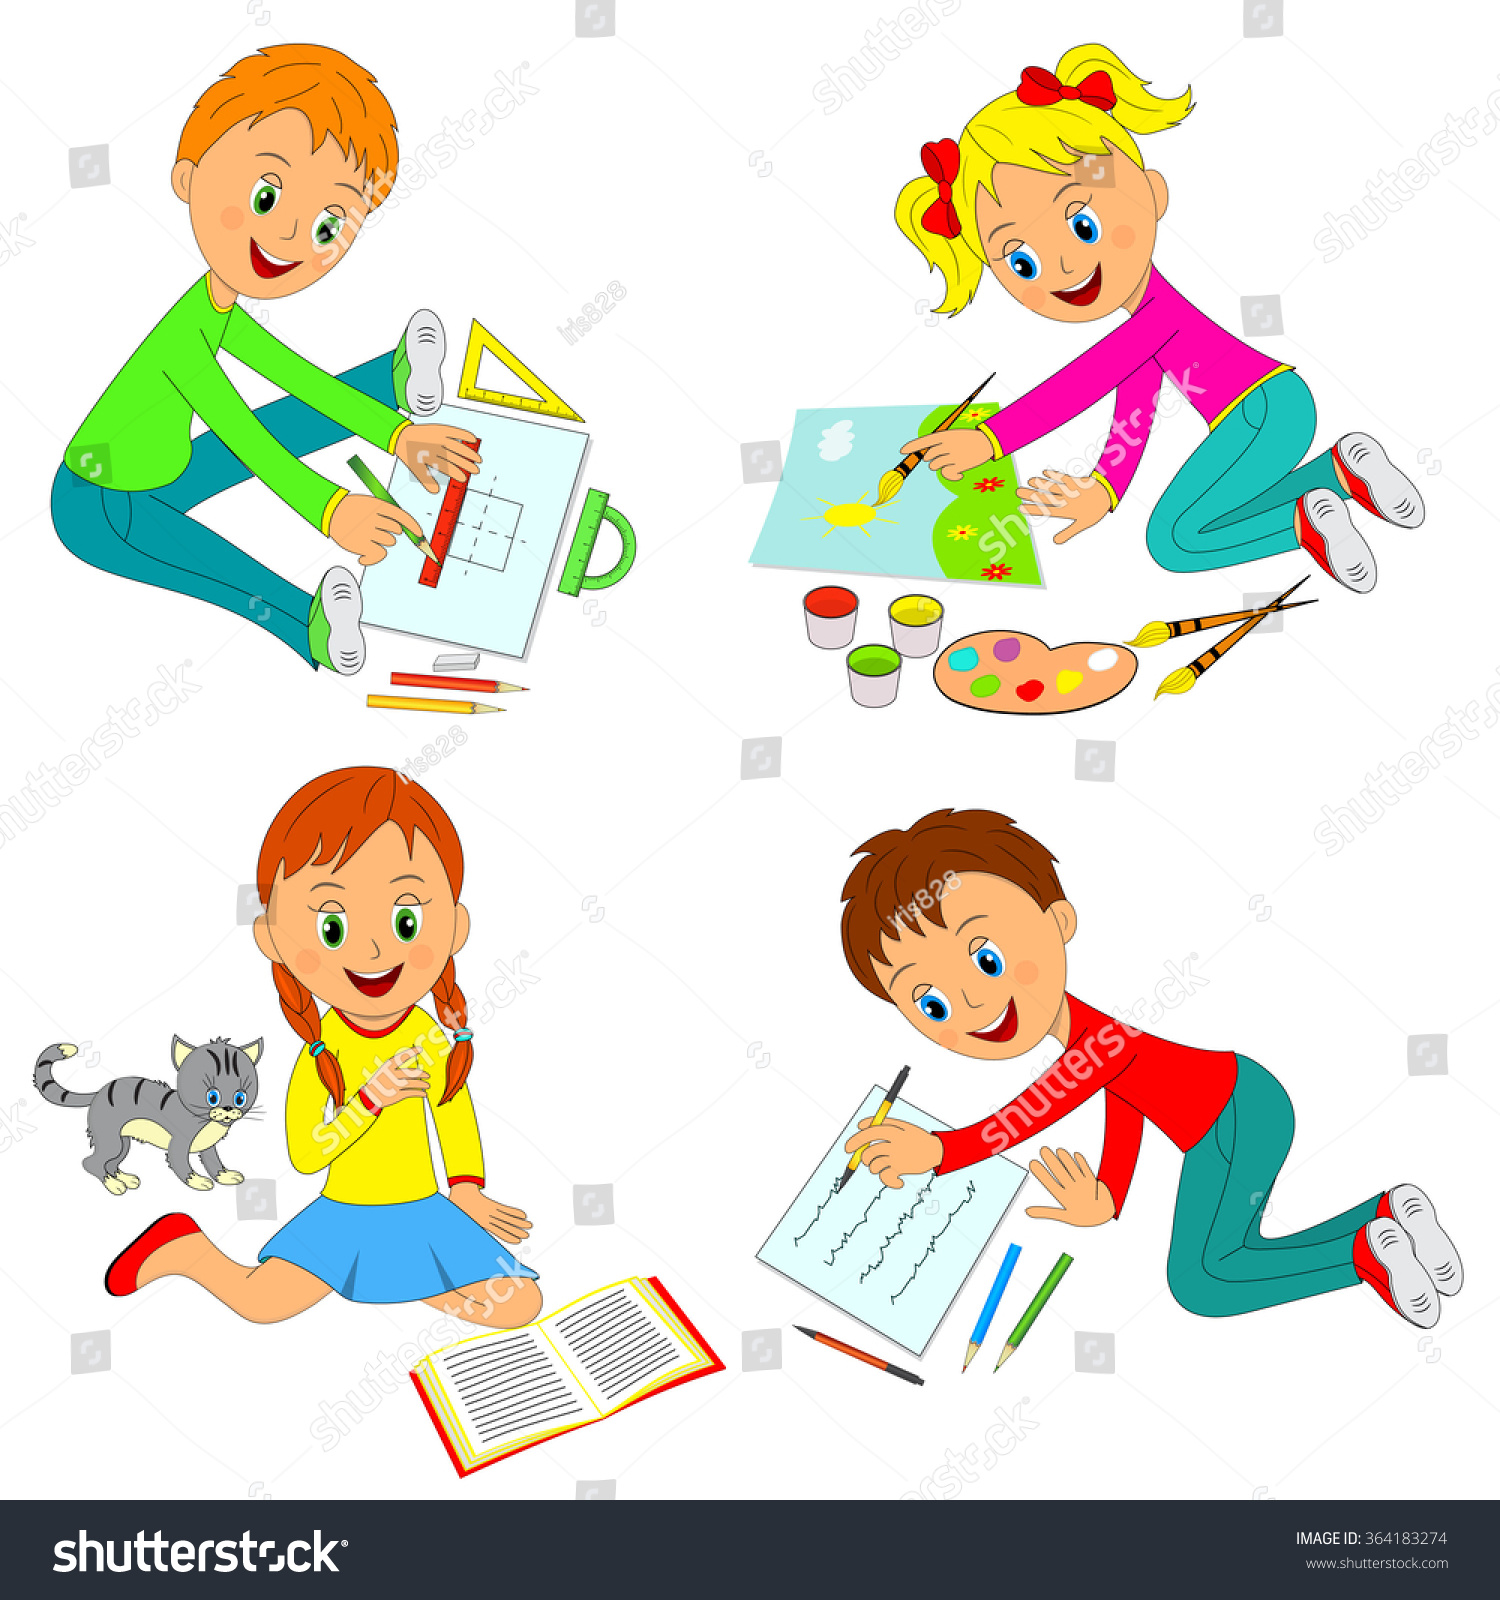 Kids Learning Activityboys Girls Drawwrite Readillustrationvector Stock Vector